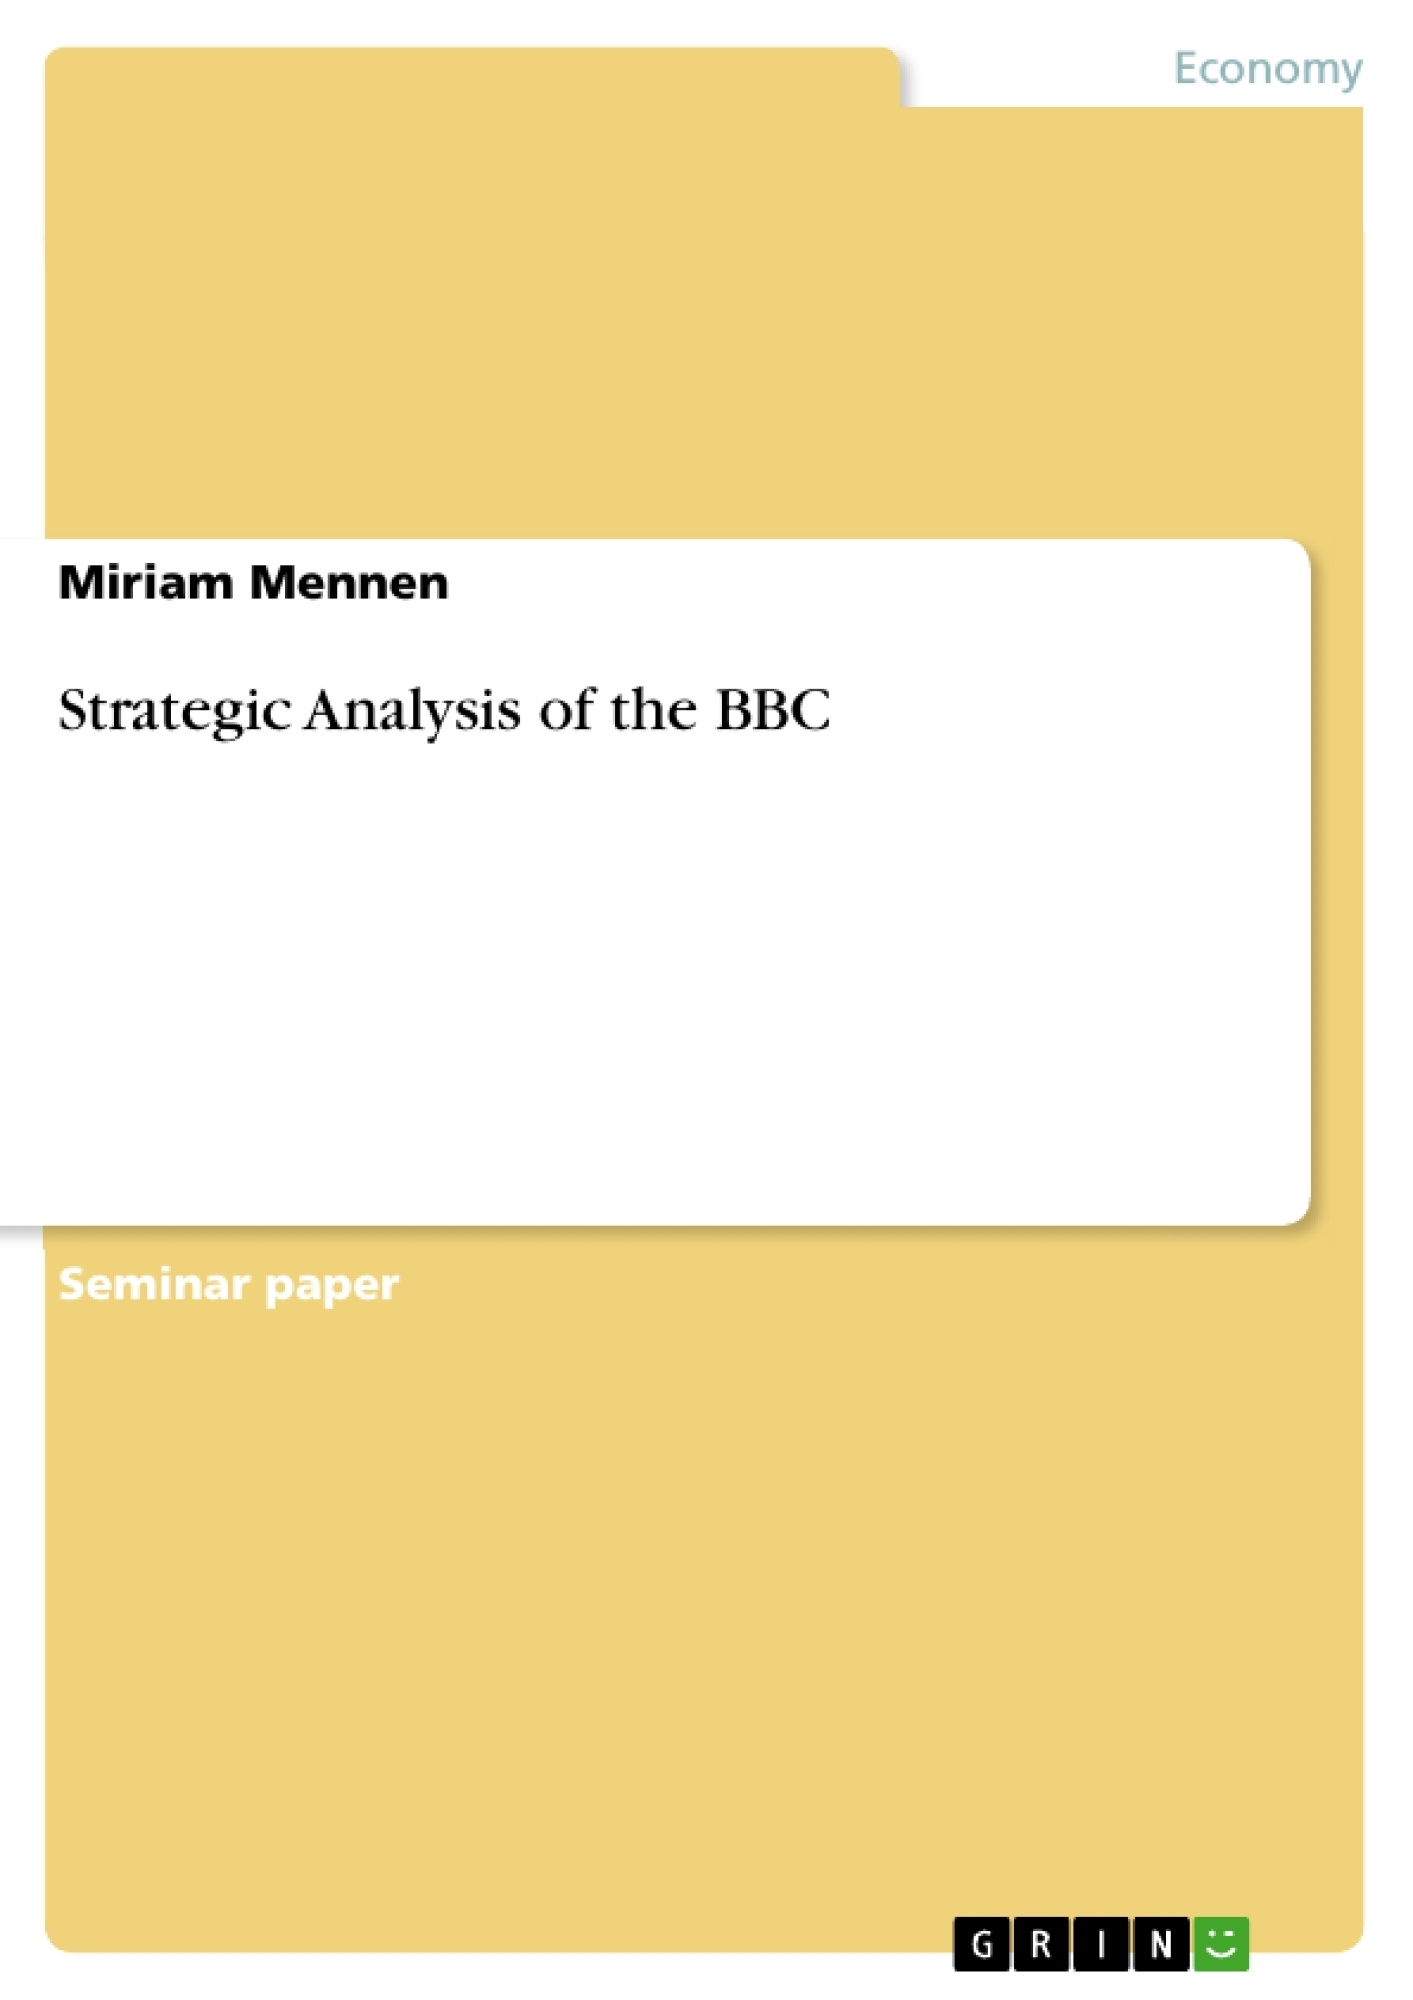 bbc strategic management analysis Global strategic management the company to be examined is fiat  • wwwbbccouk  carry out a full strategic analysis and evaluation of fiat.